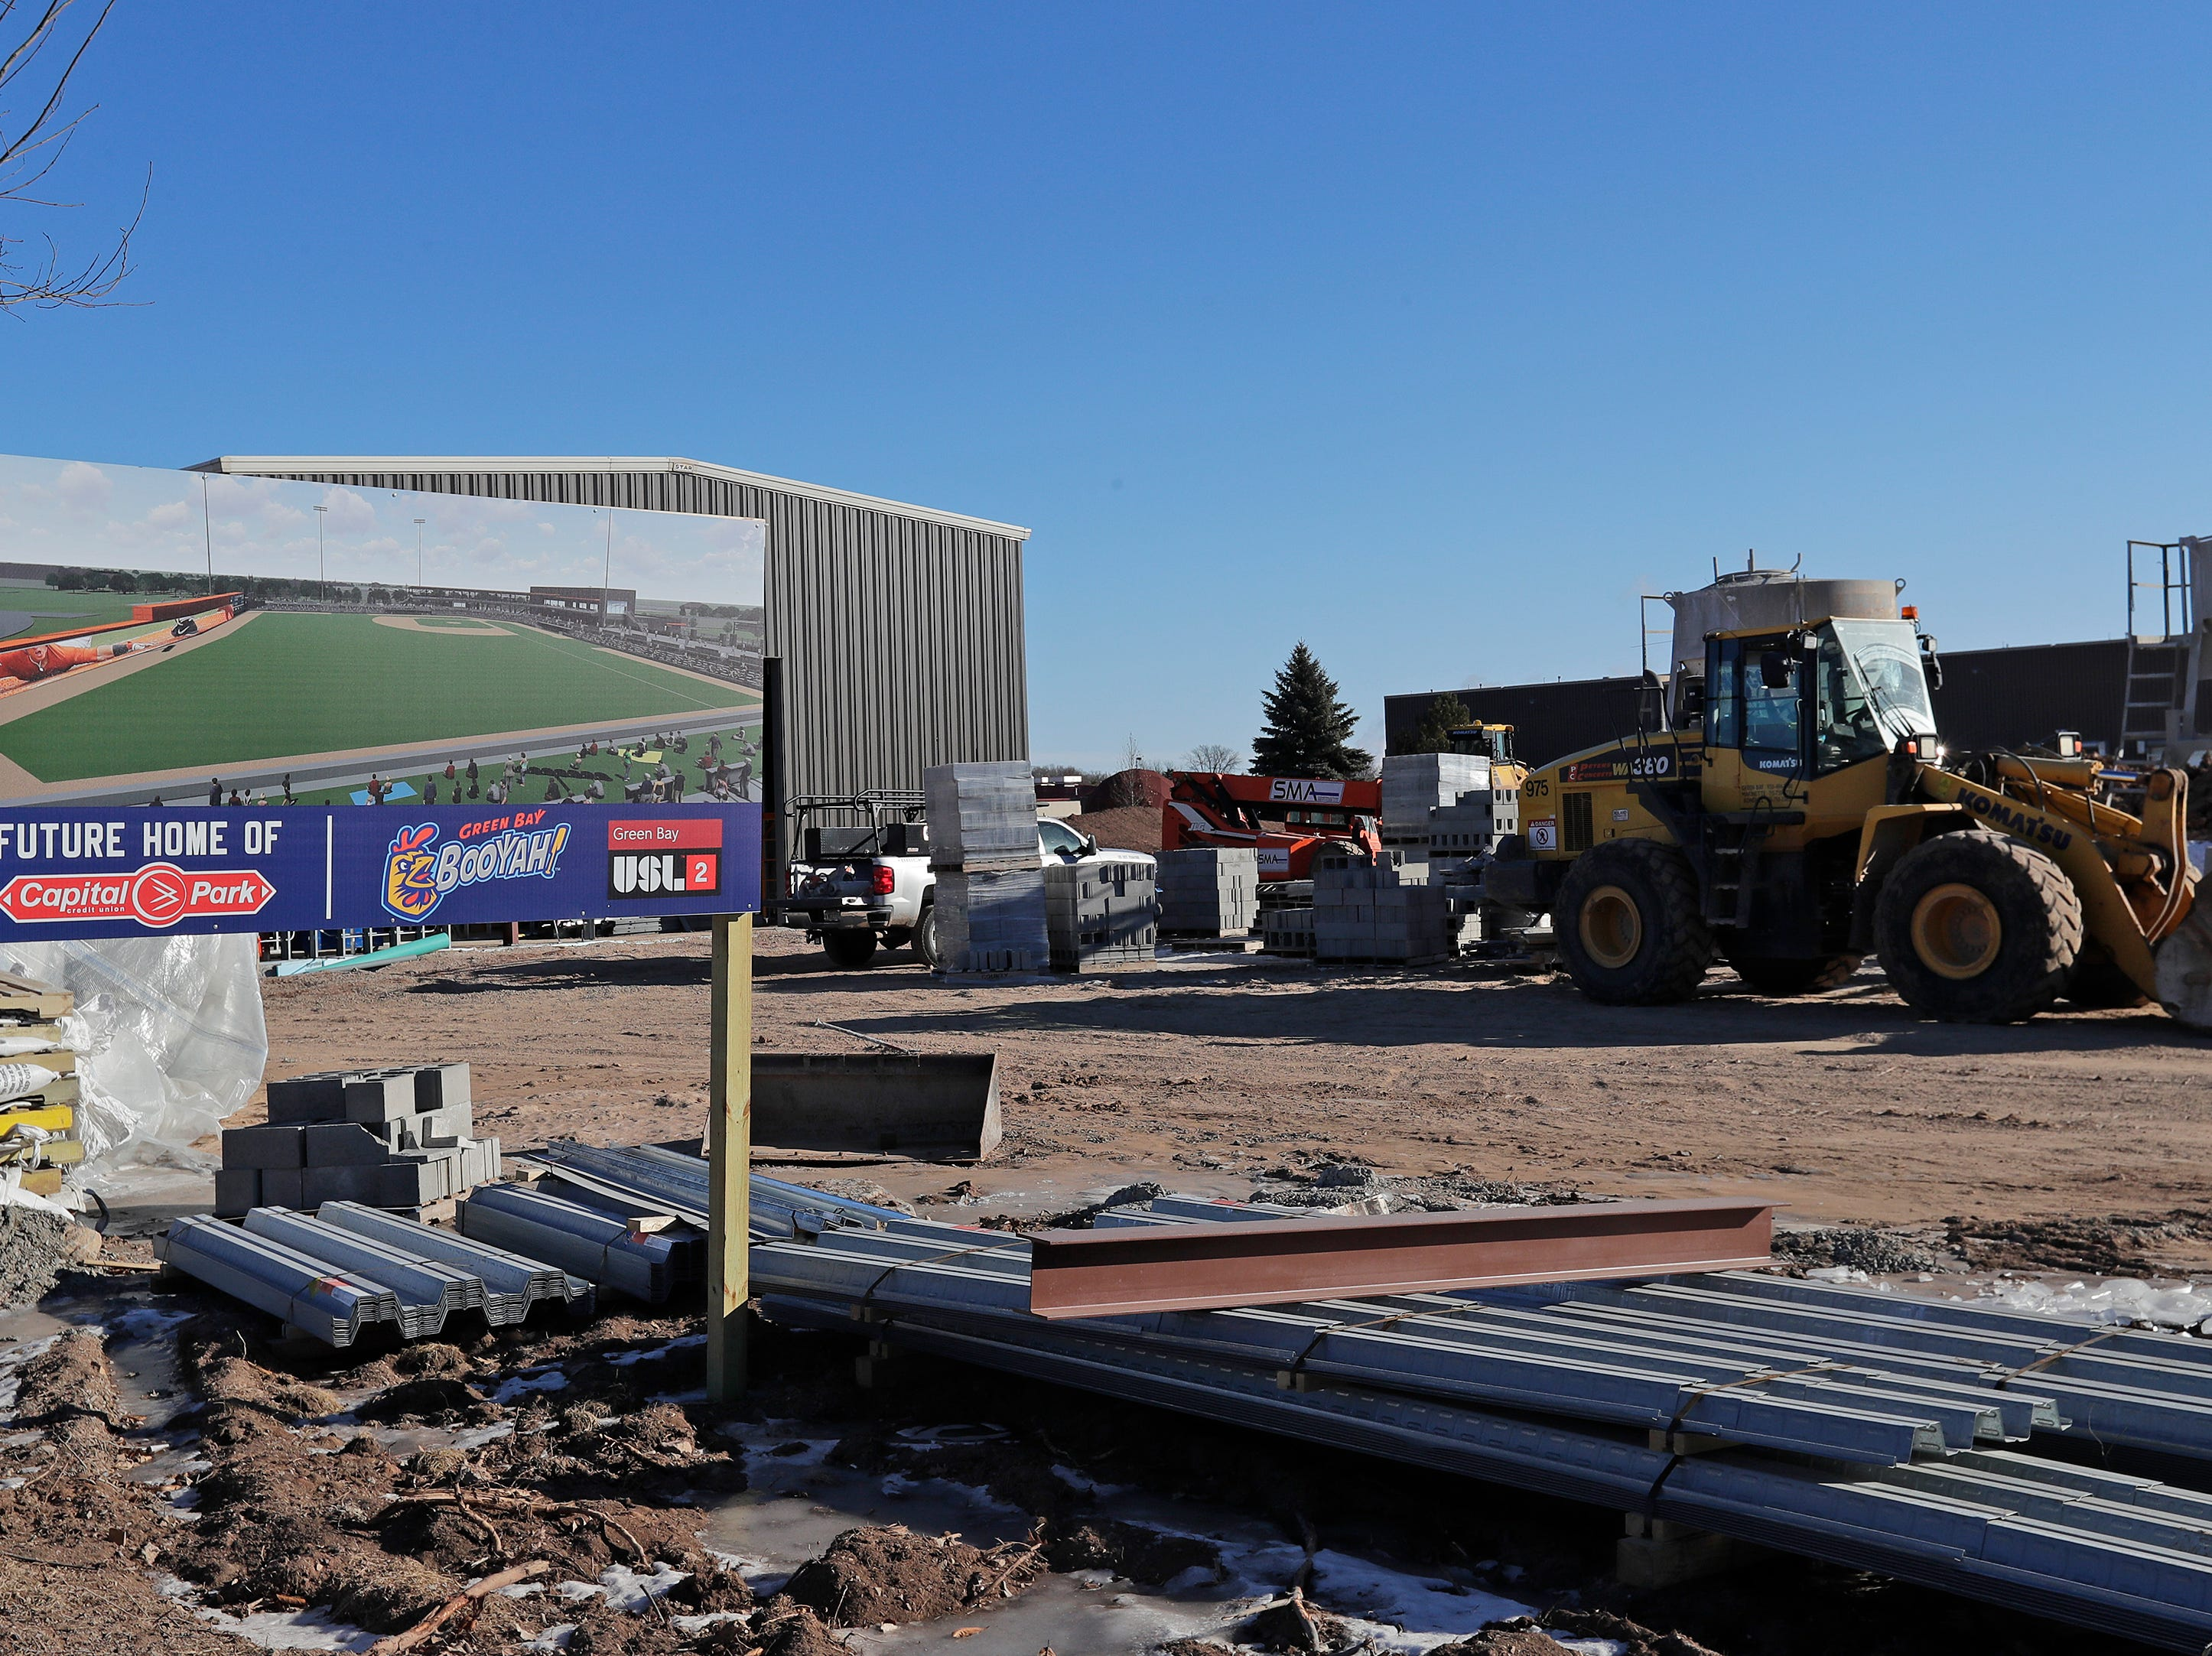 Construction for Capital Credit Union Park is ongoing on Wednesday, January 16, 2019 in Ashwaubenon, Wis. The stadium is set to open this spring and will host the Green Bay Booyah baseball team in the Northwoods League and a United Soccer Leagues League 2 team.